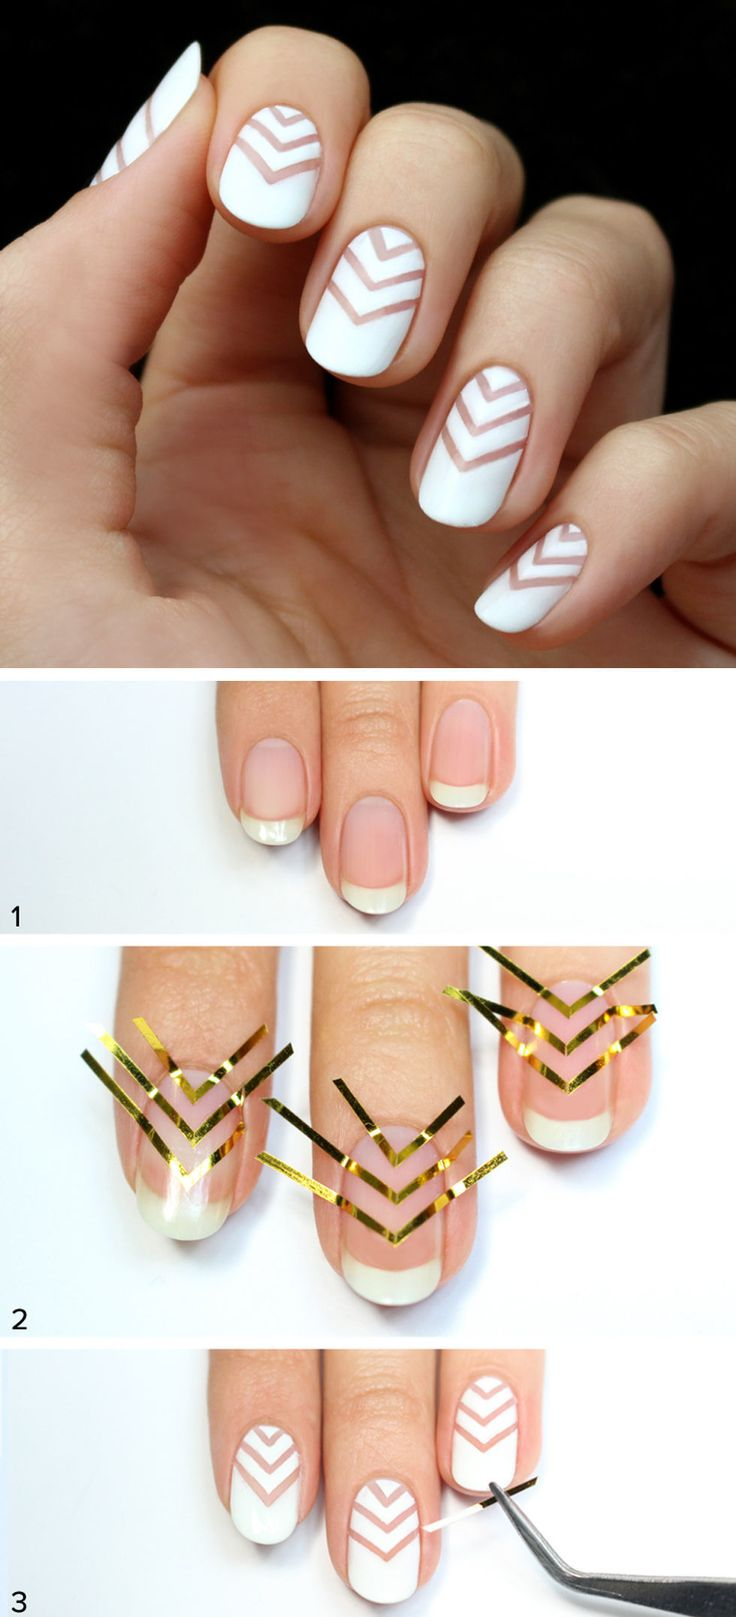 4 Nail Designs That Seem Tricky But Arenu0027t